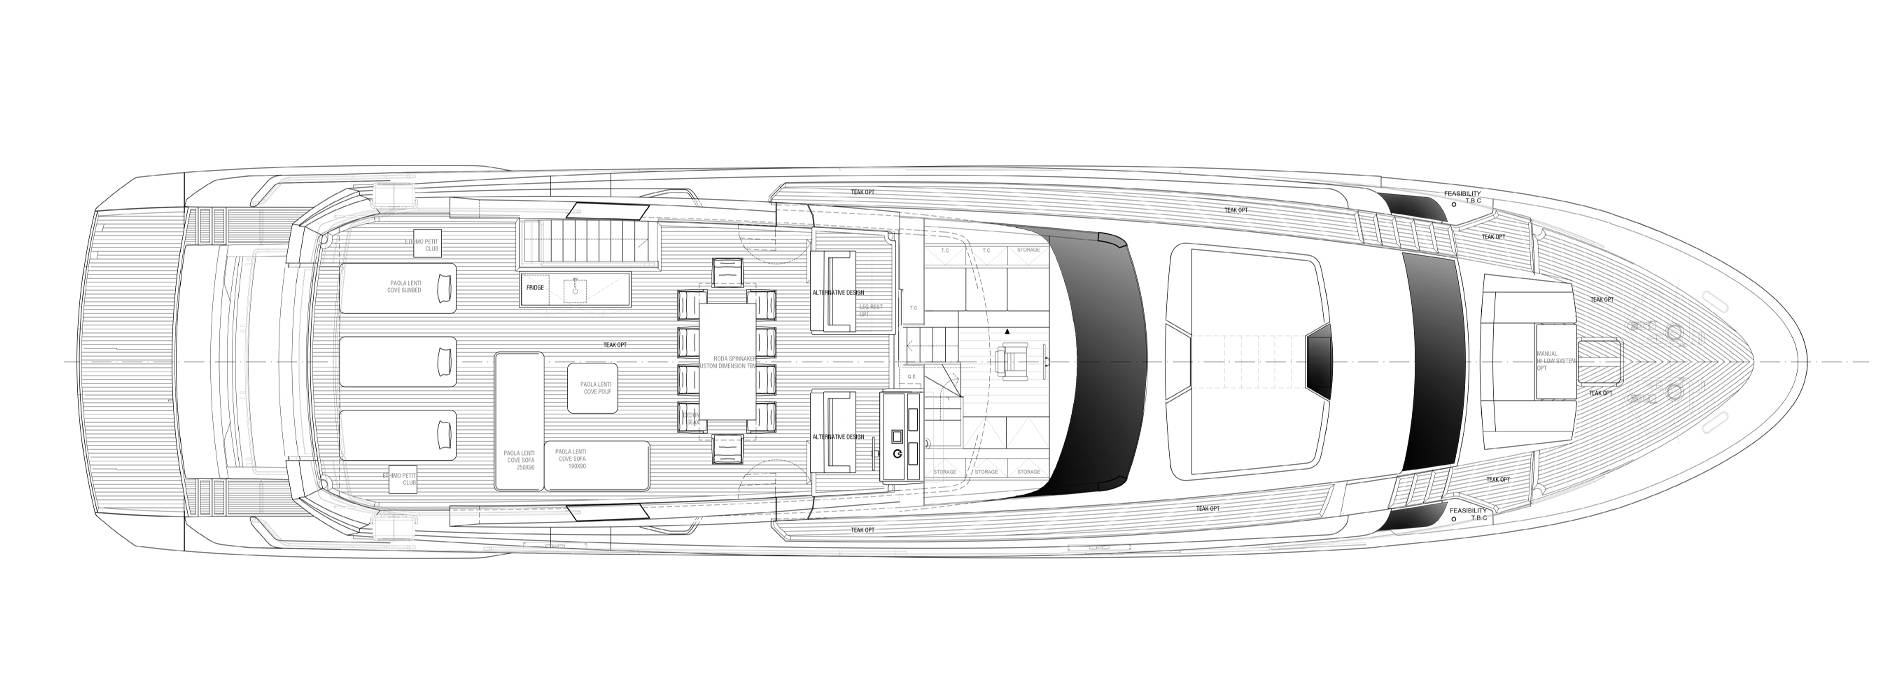 Sanlorenzo Yachts SL102A-746 under offer Flying bridge